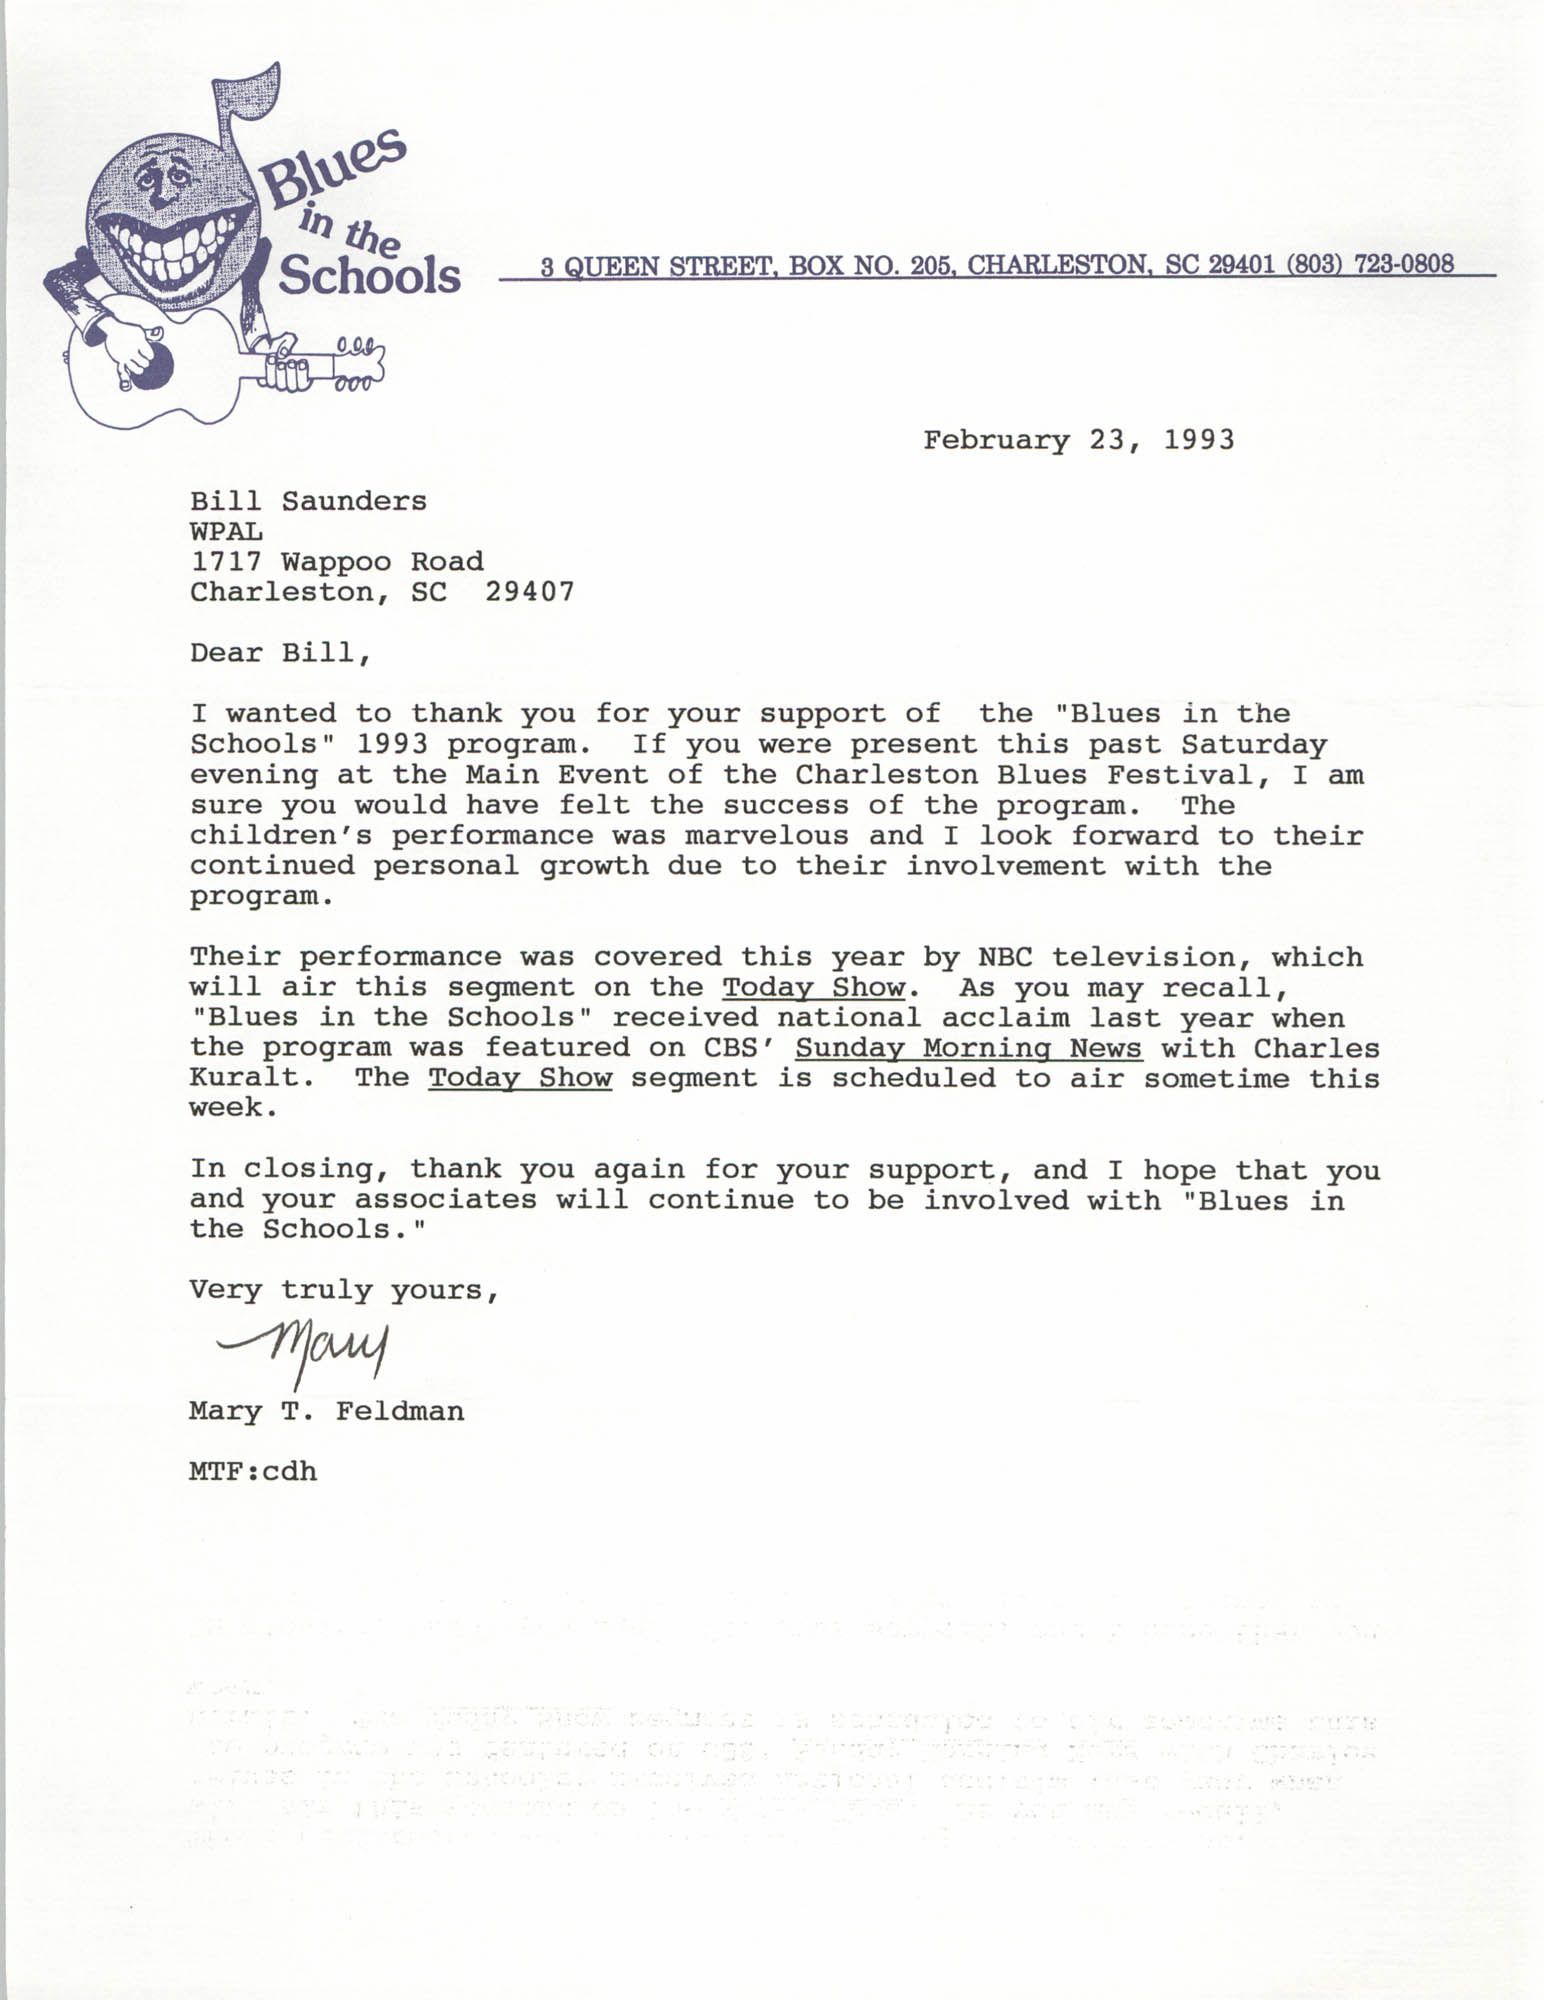 Letter from Mary T. Feldman to William Saunders, February 23, 1993